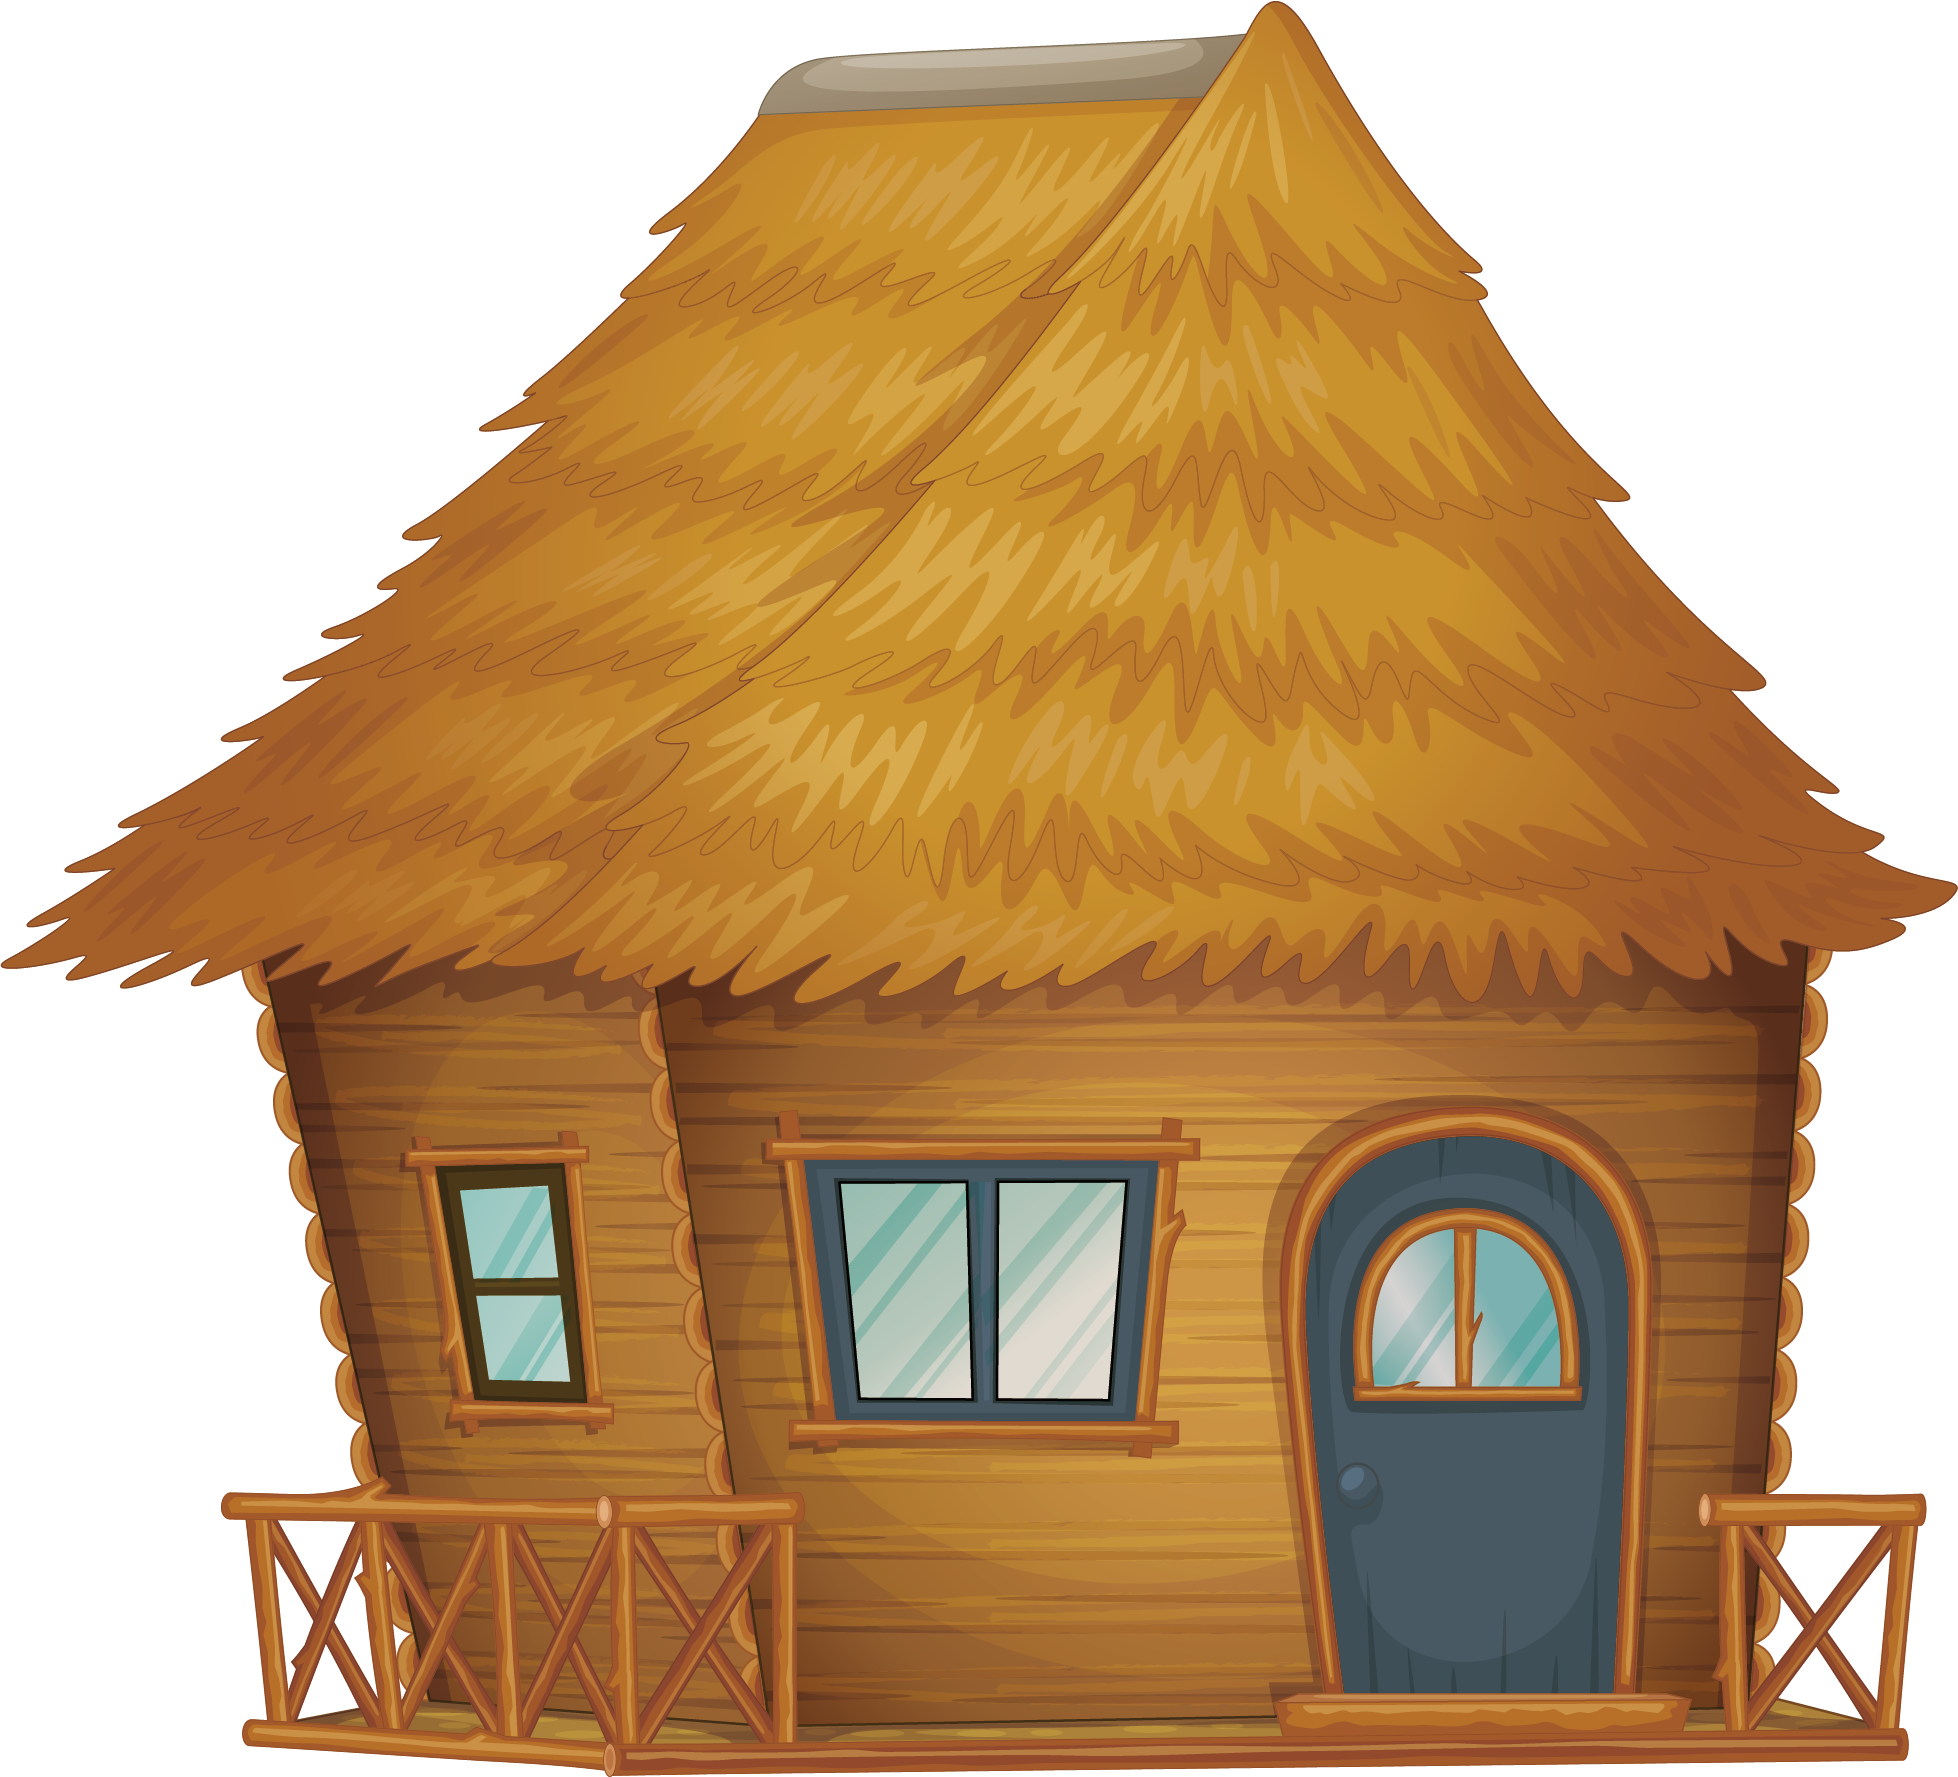 Hut house clipart picture free library Nipa hut Cartoon Clip art - Raw straw house 1958*1777 transprent Png ... picture free library